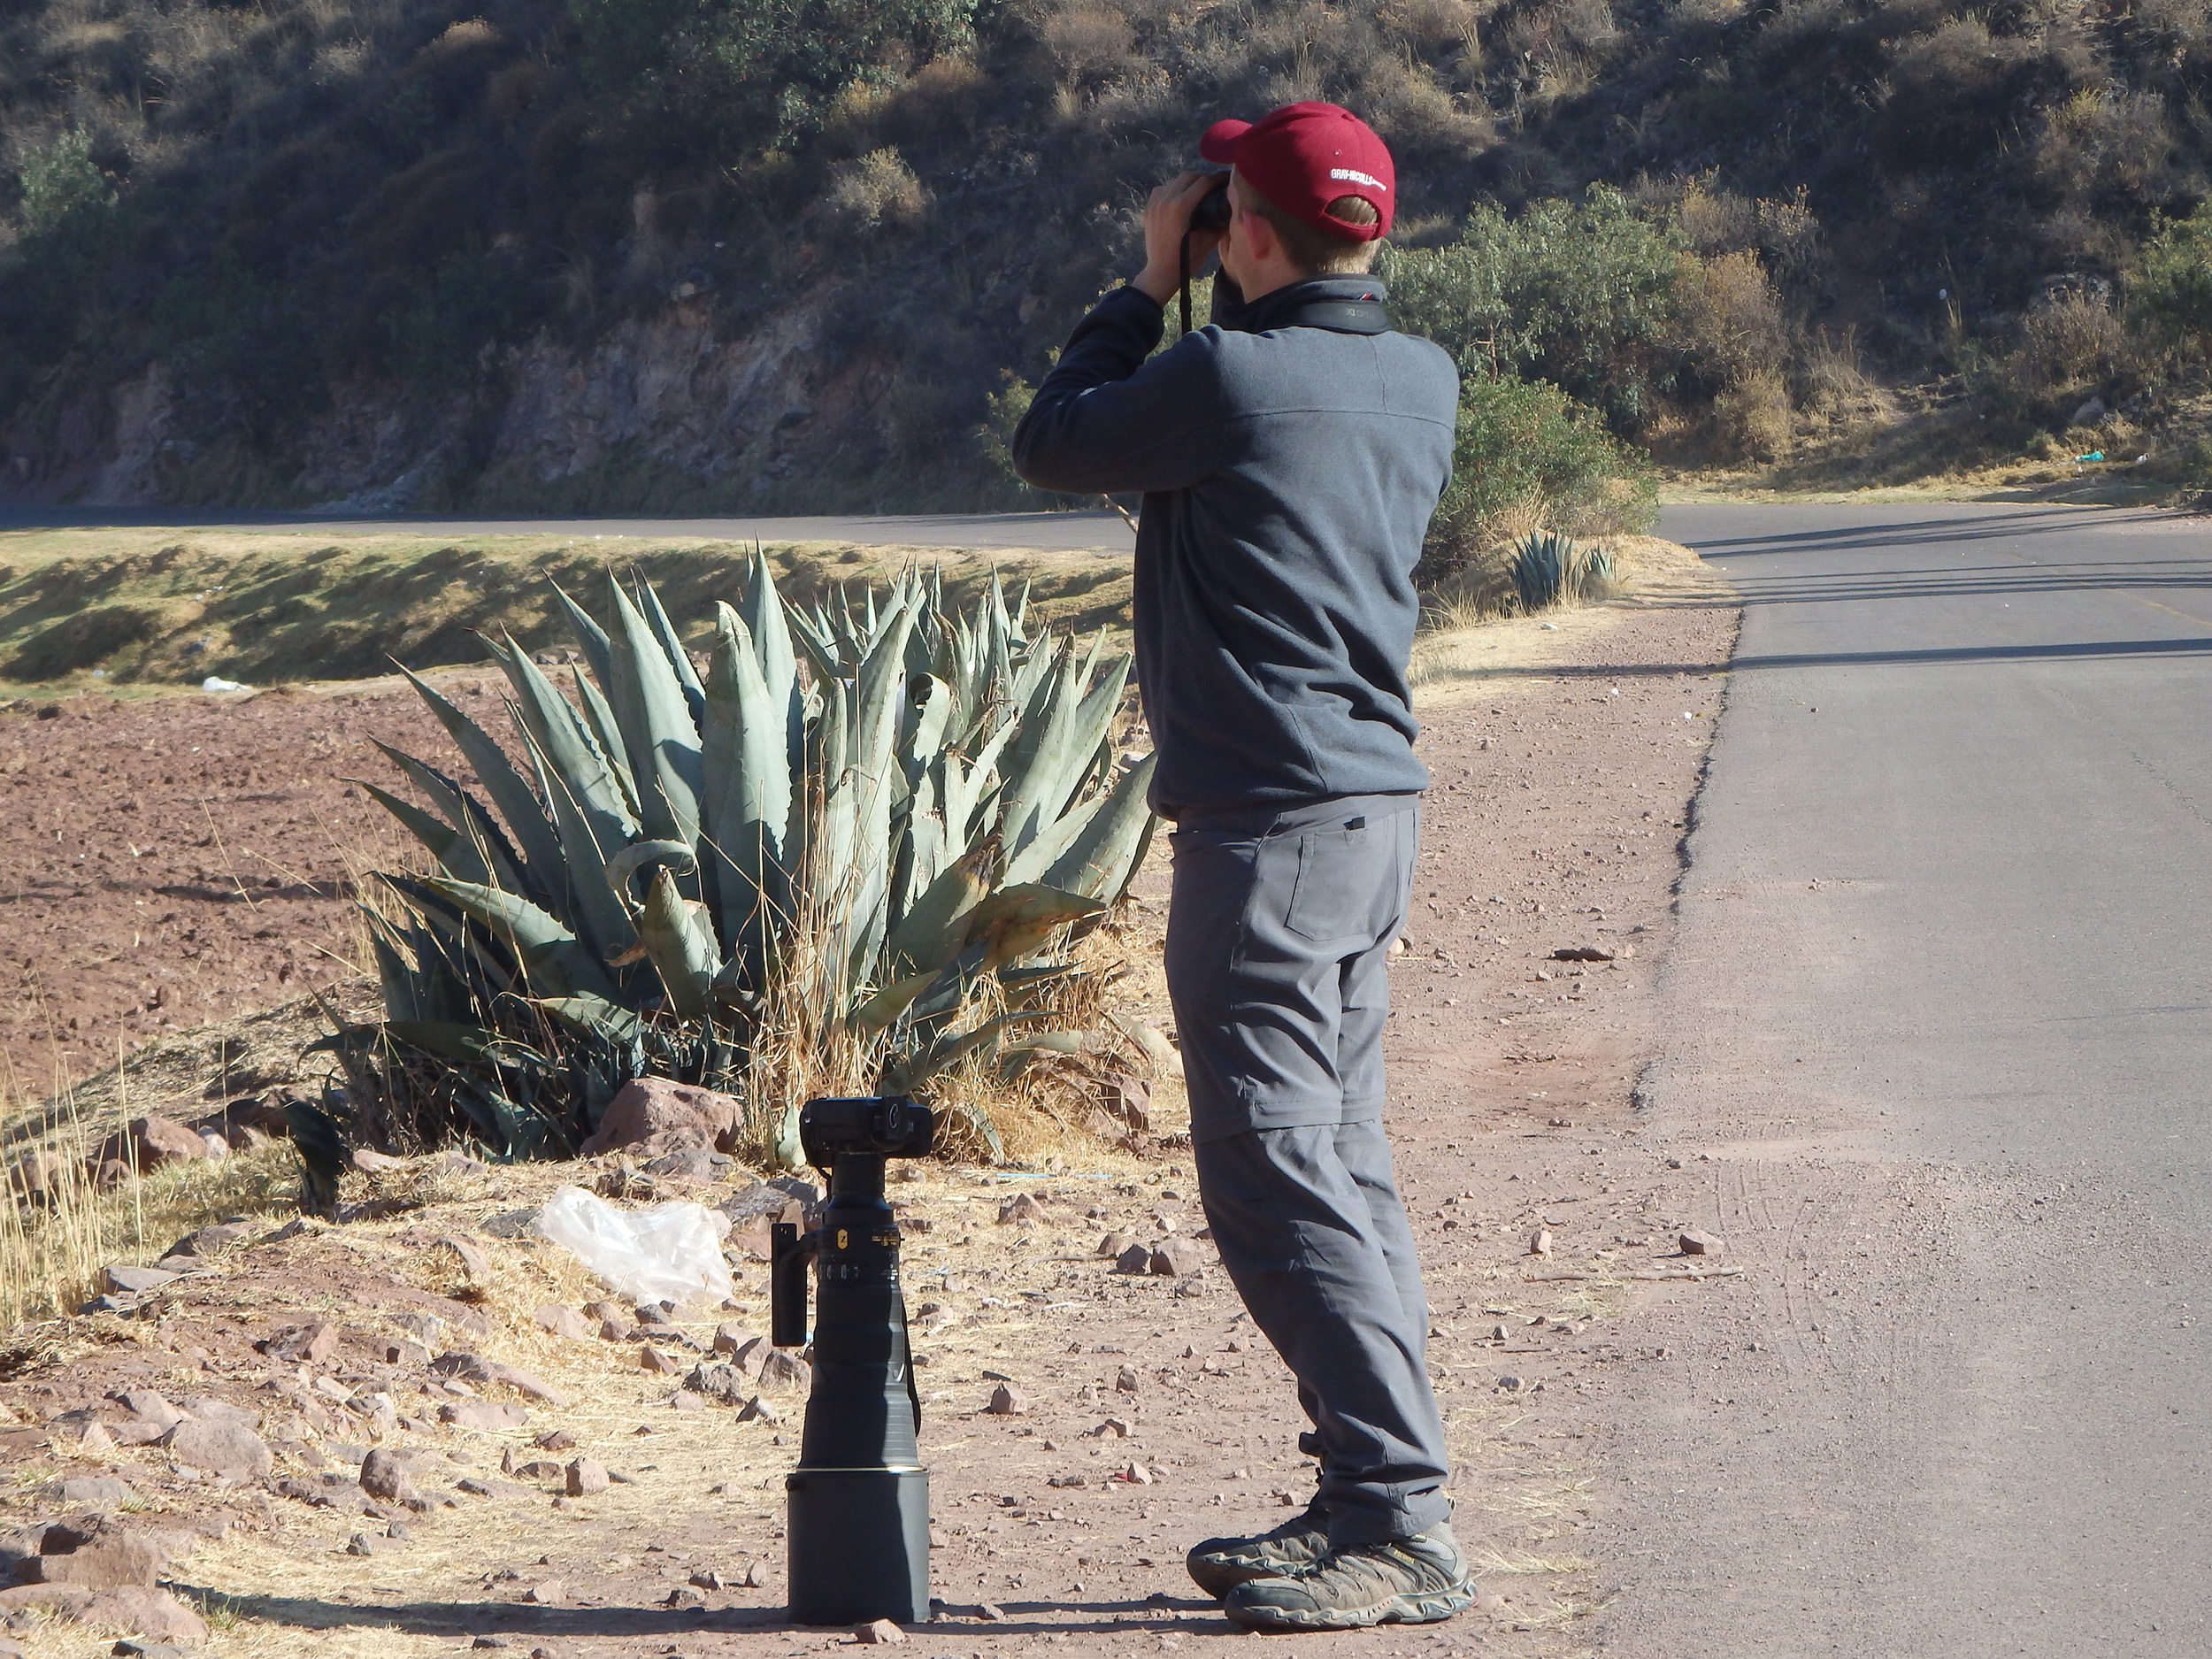 Searching for birds in the Peruvian Andes